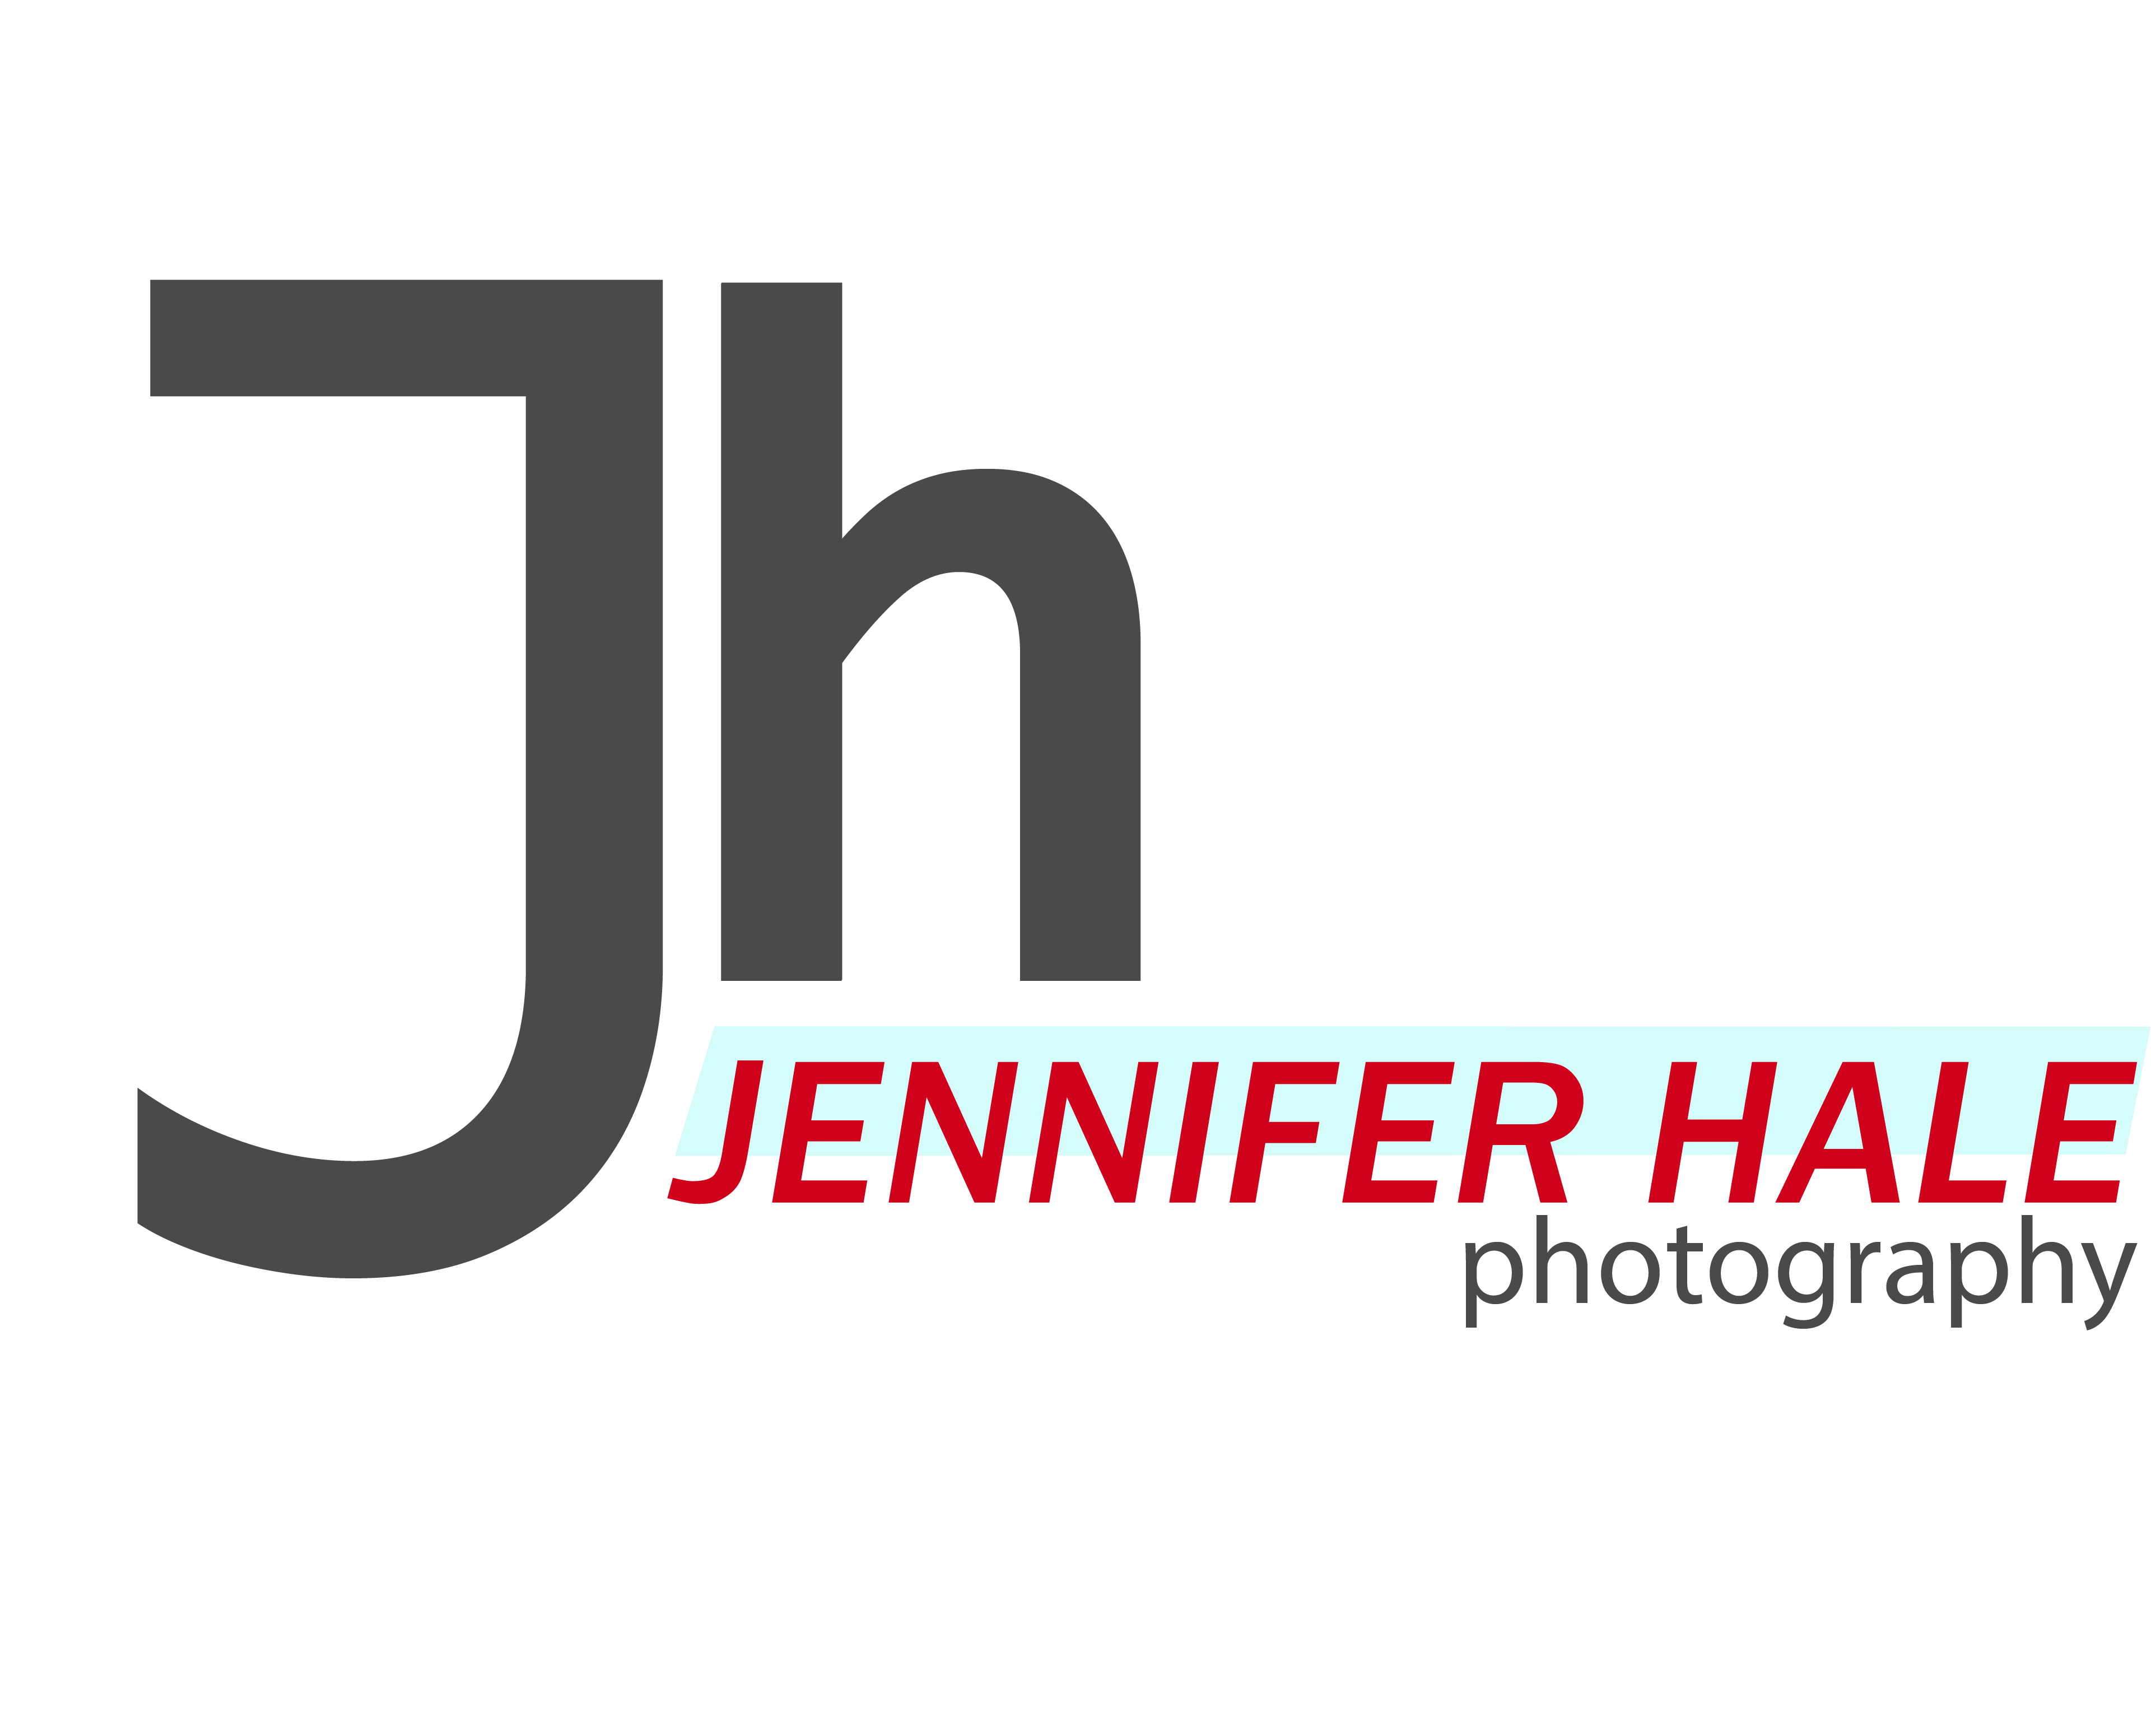 Jennifer Hale Photography